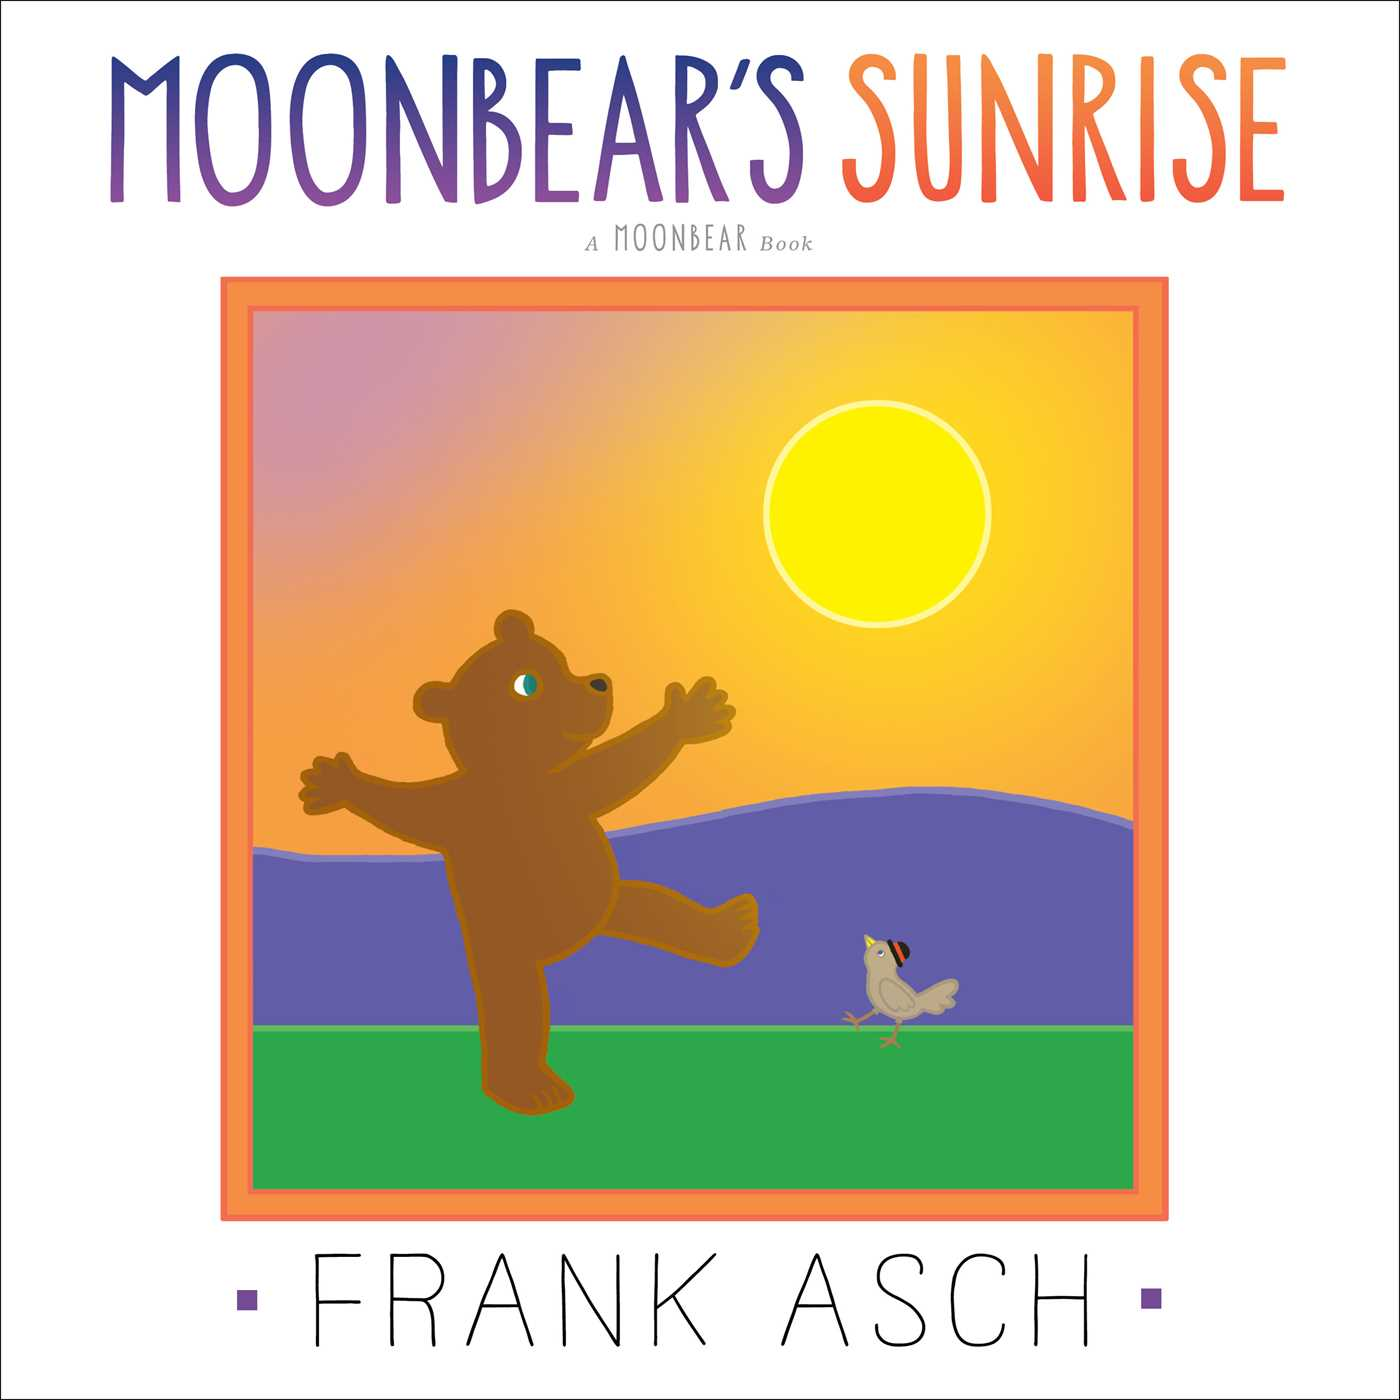 Moonbears sunrise 9781442466487 hr